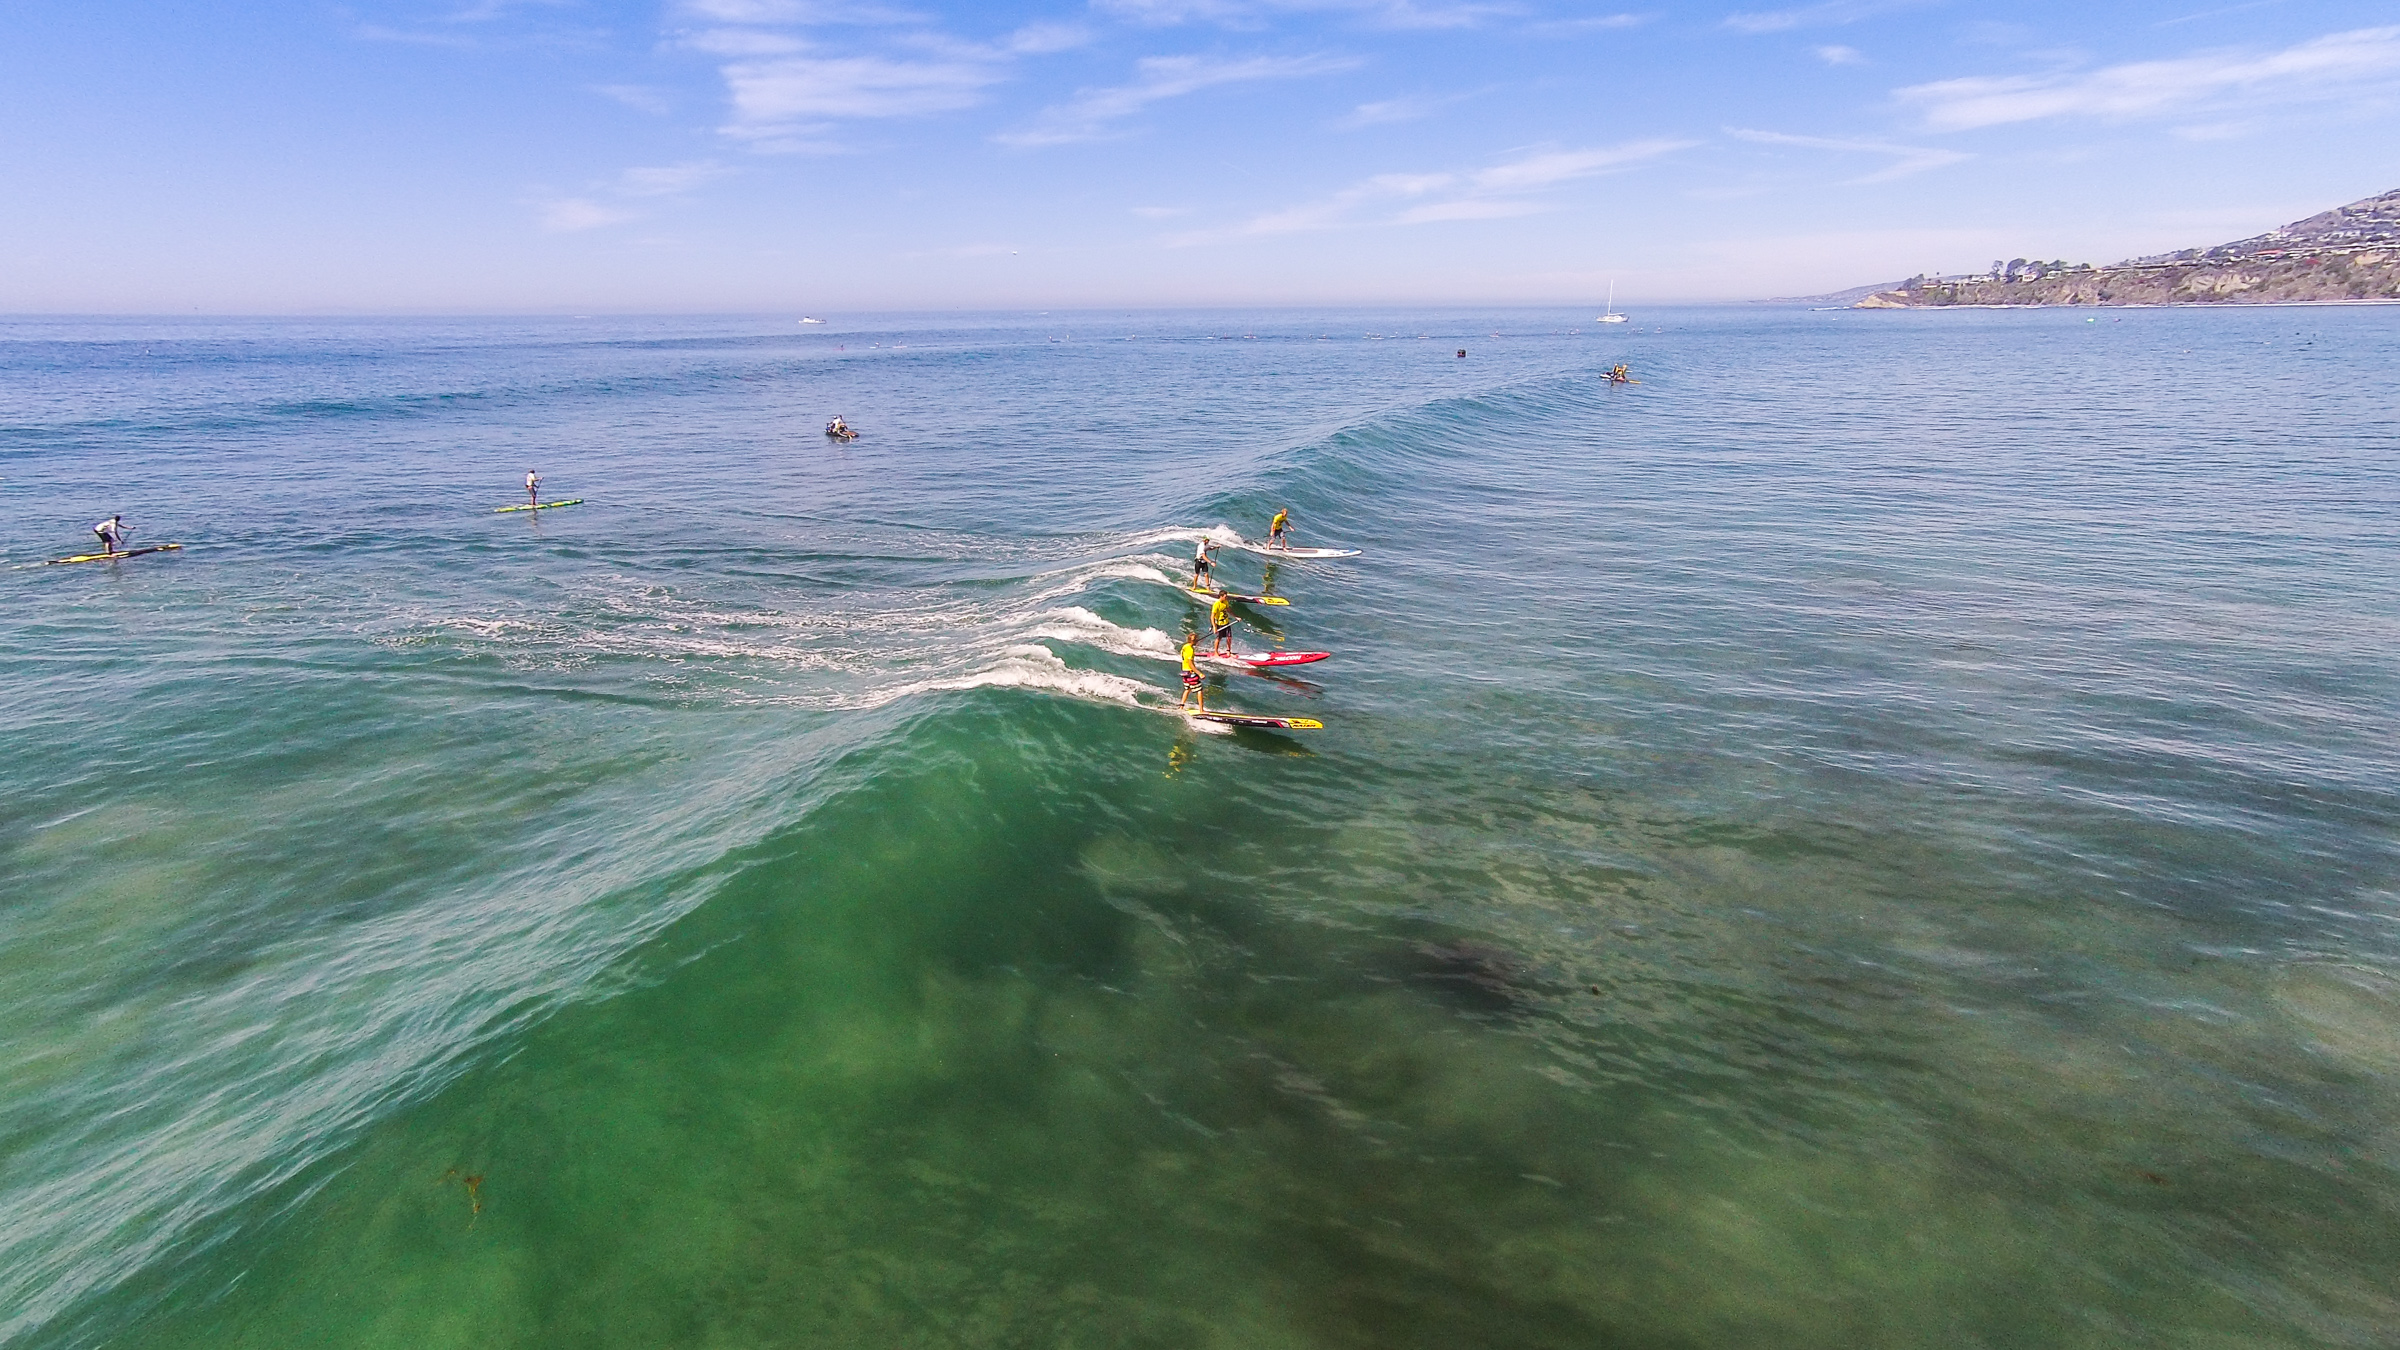 Multiple races catch a wave at the Battle of the Paddle. Photo: Tony Tribolet/www.xpsphoto.com